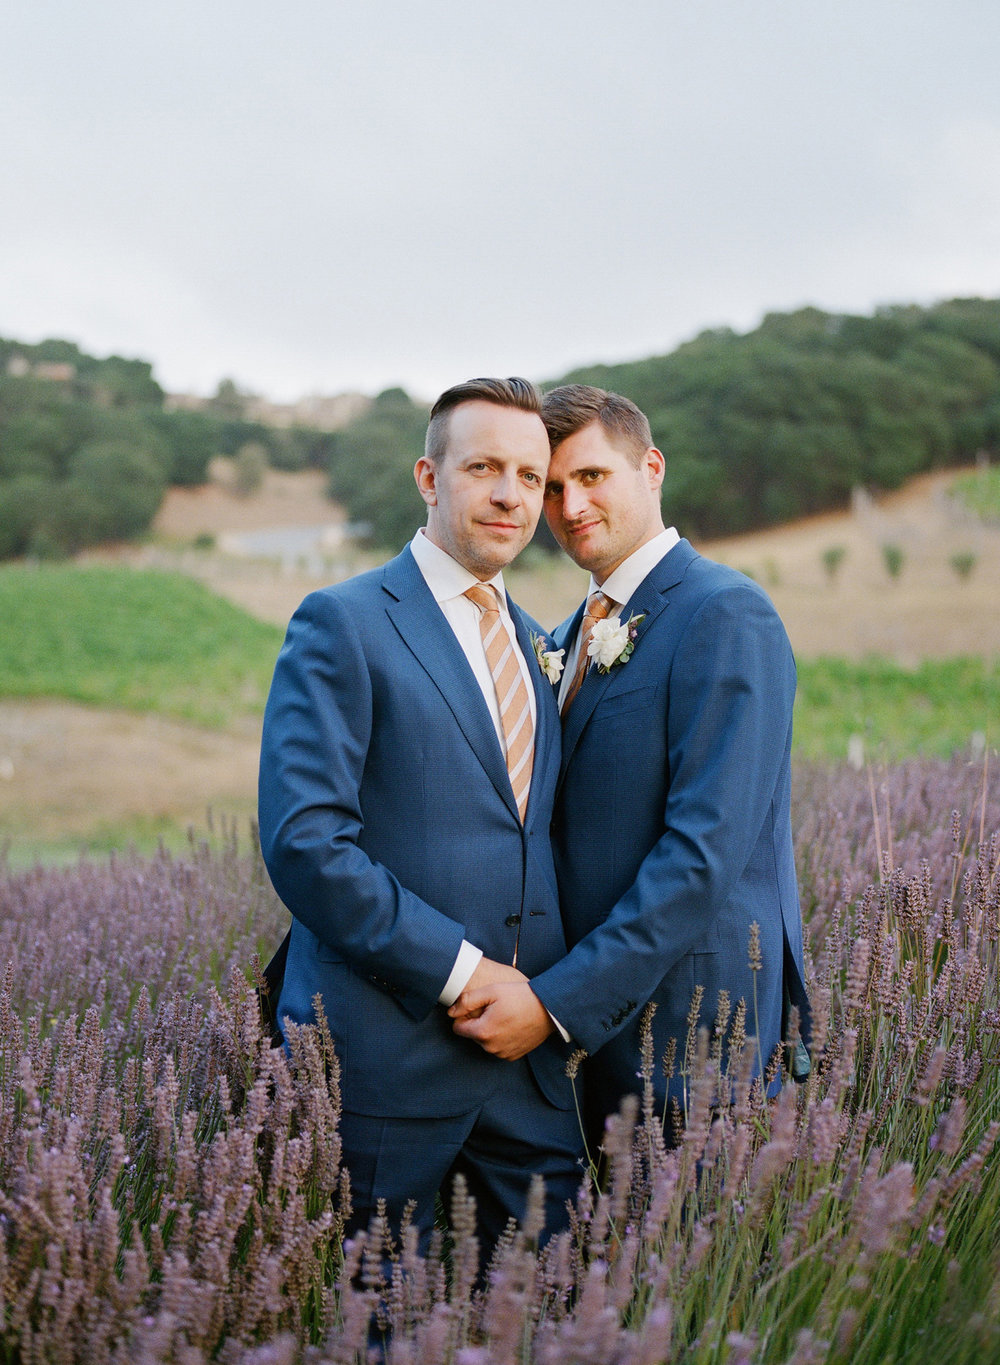 8-gay-wedding-portrait-lavender-field.jpg